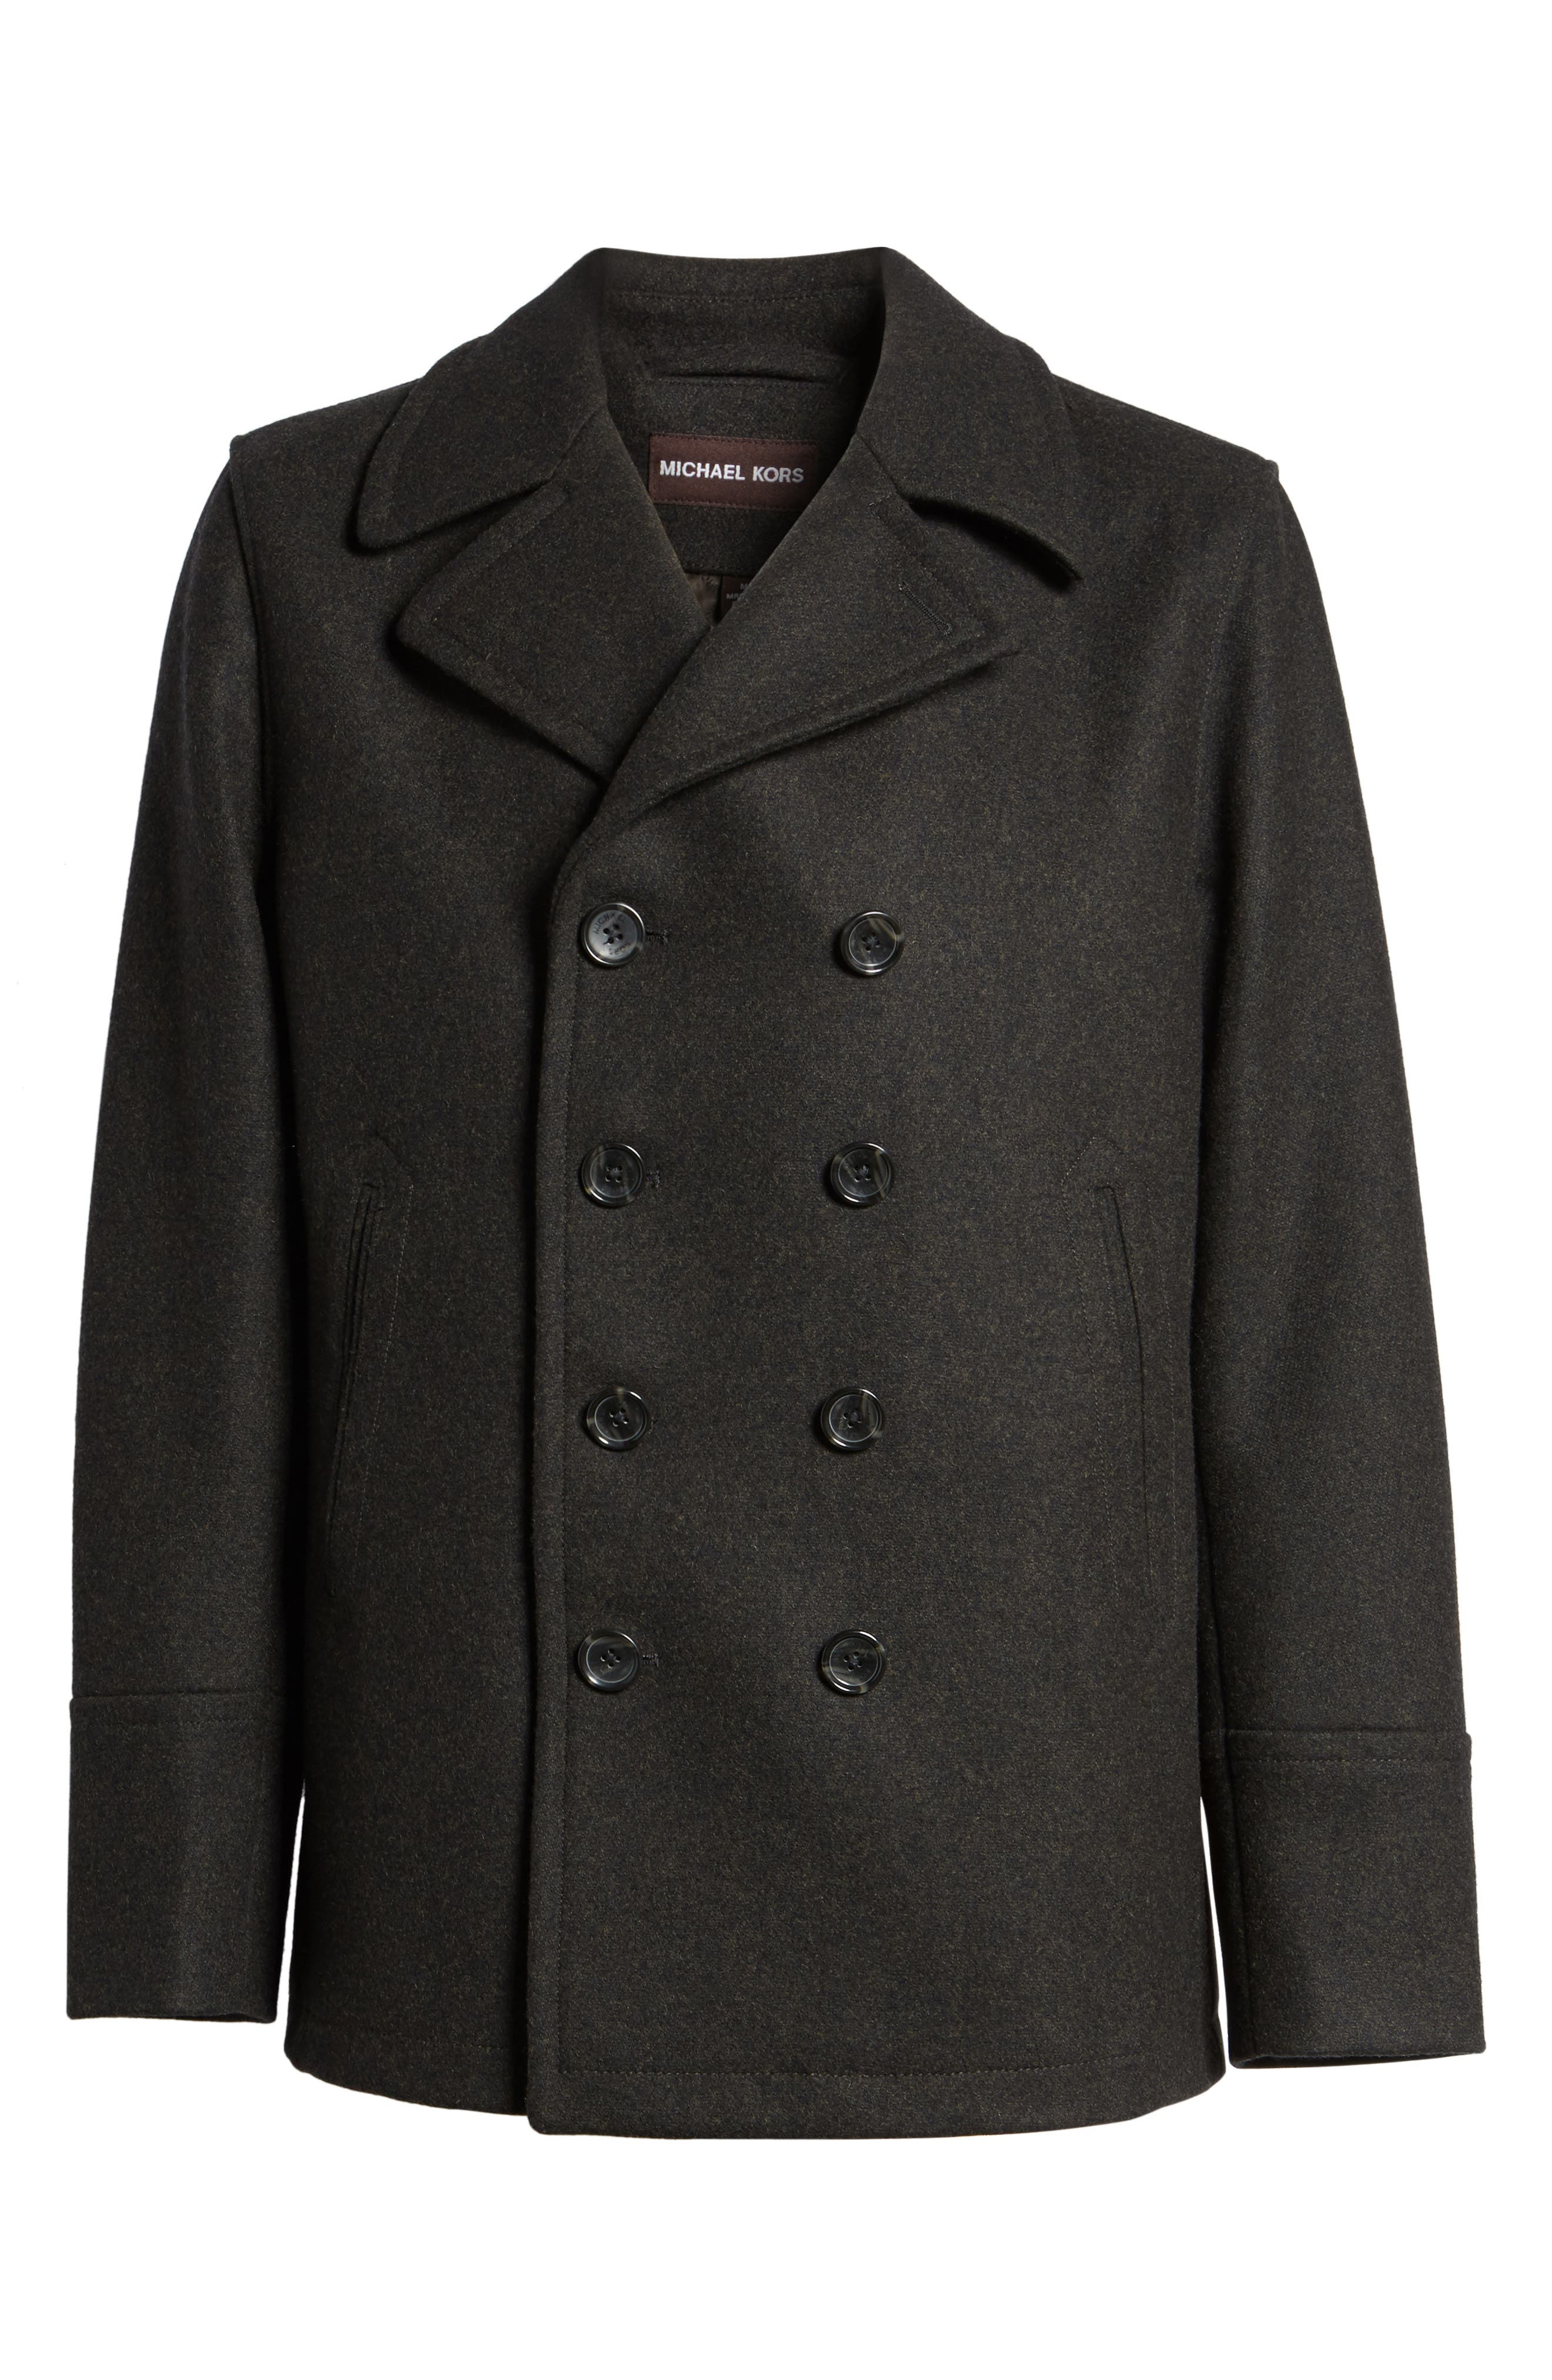 Wool Blend Peacoat,                             Alternate thumbnail 6, color,                             Loden Heather